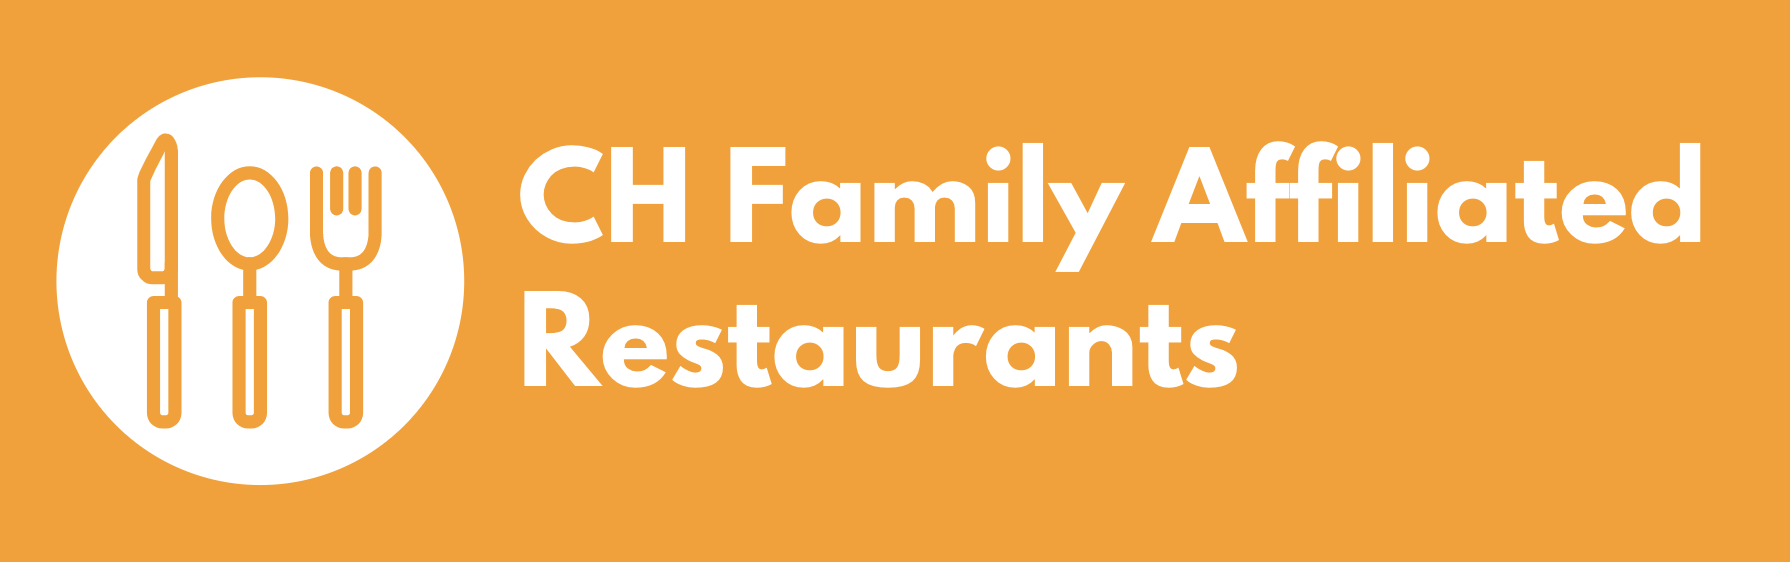 CH Family Affiliated Restaurants